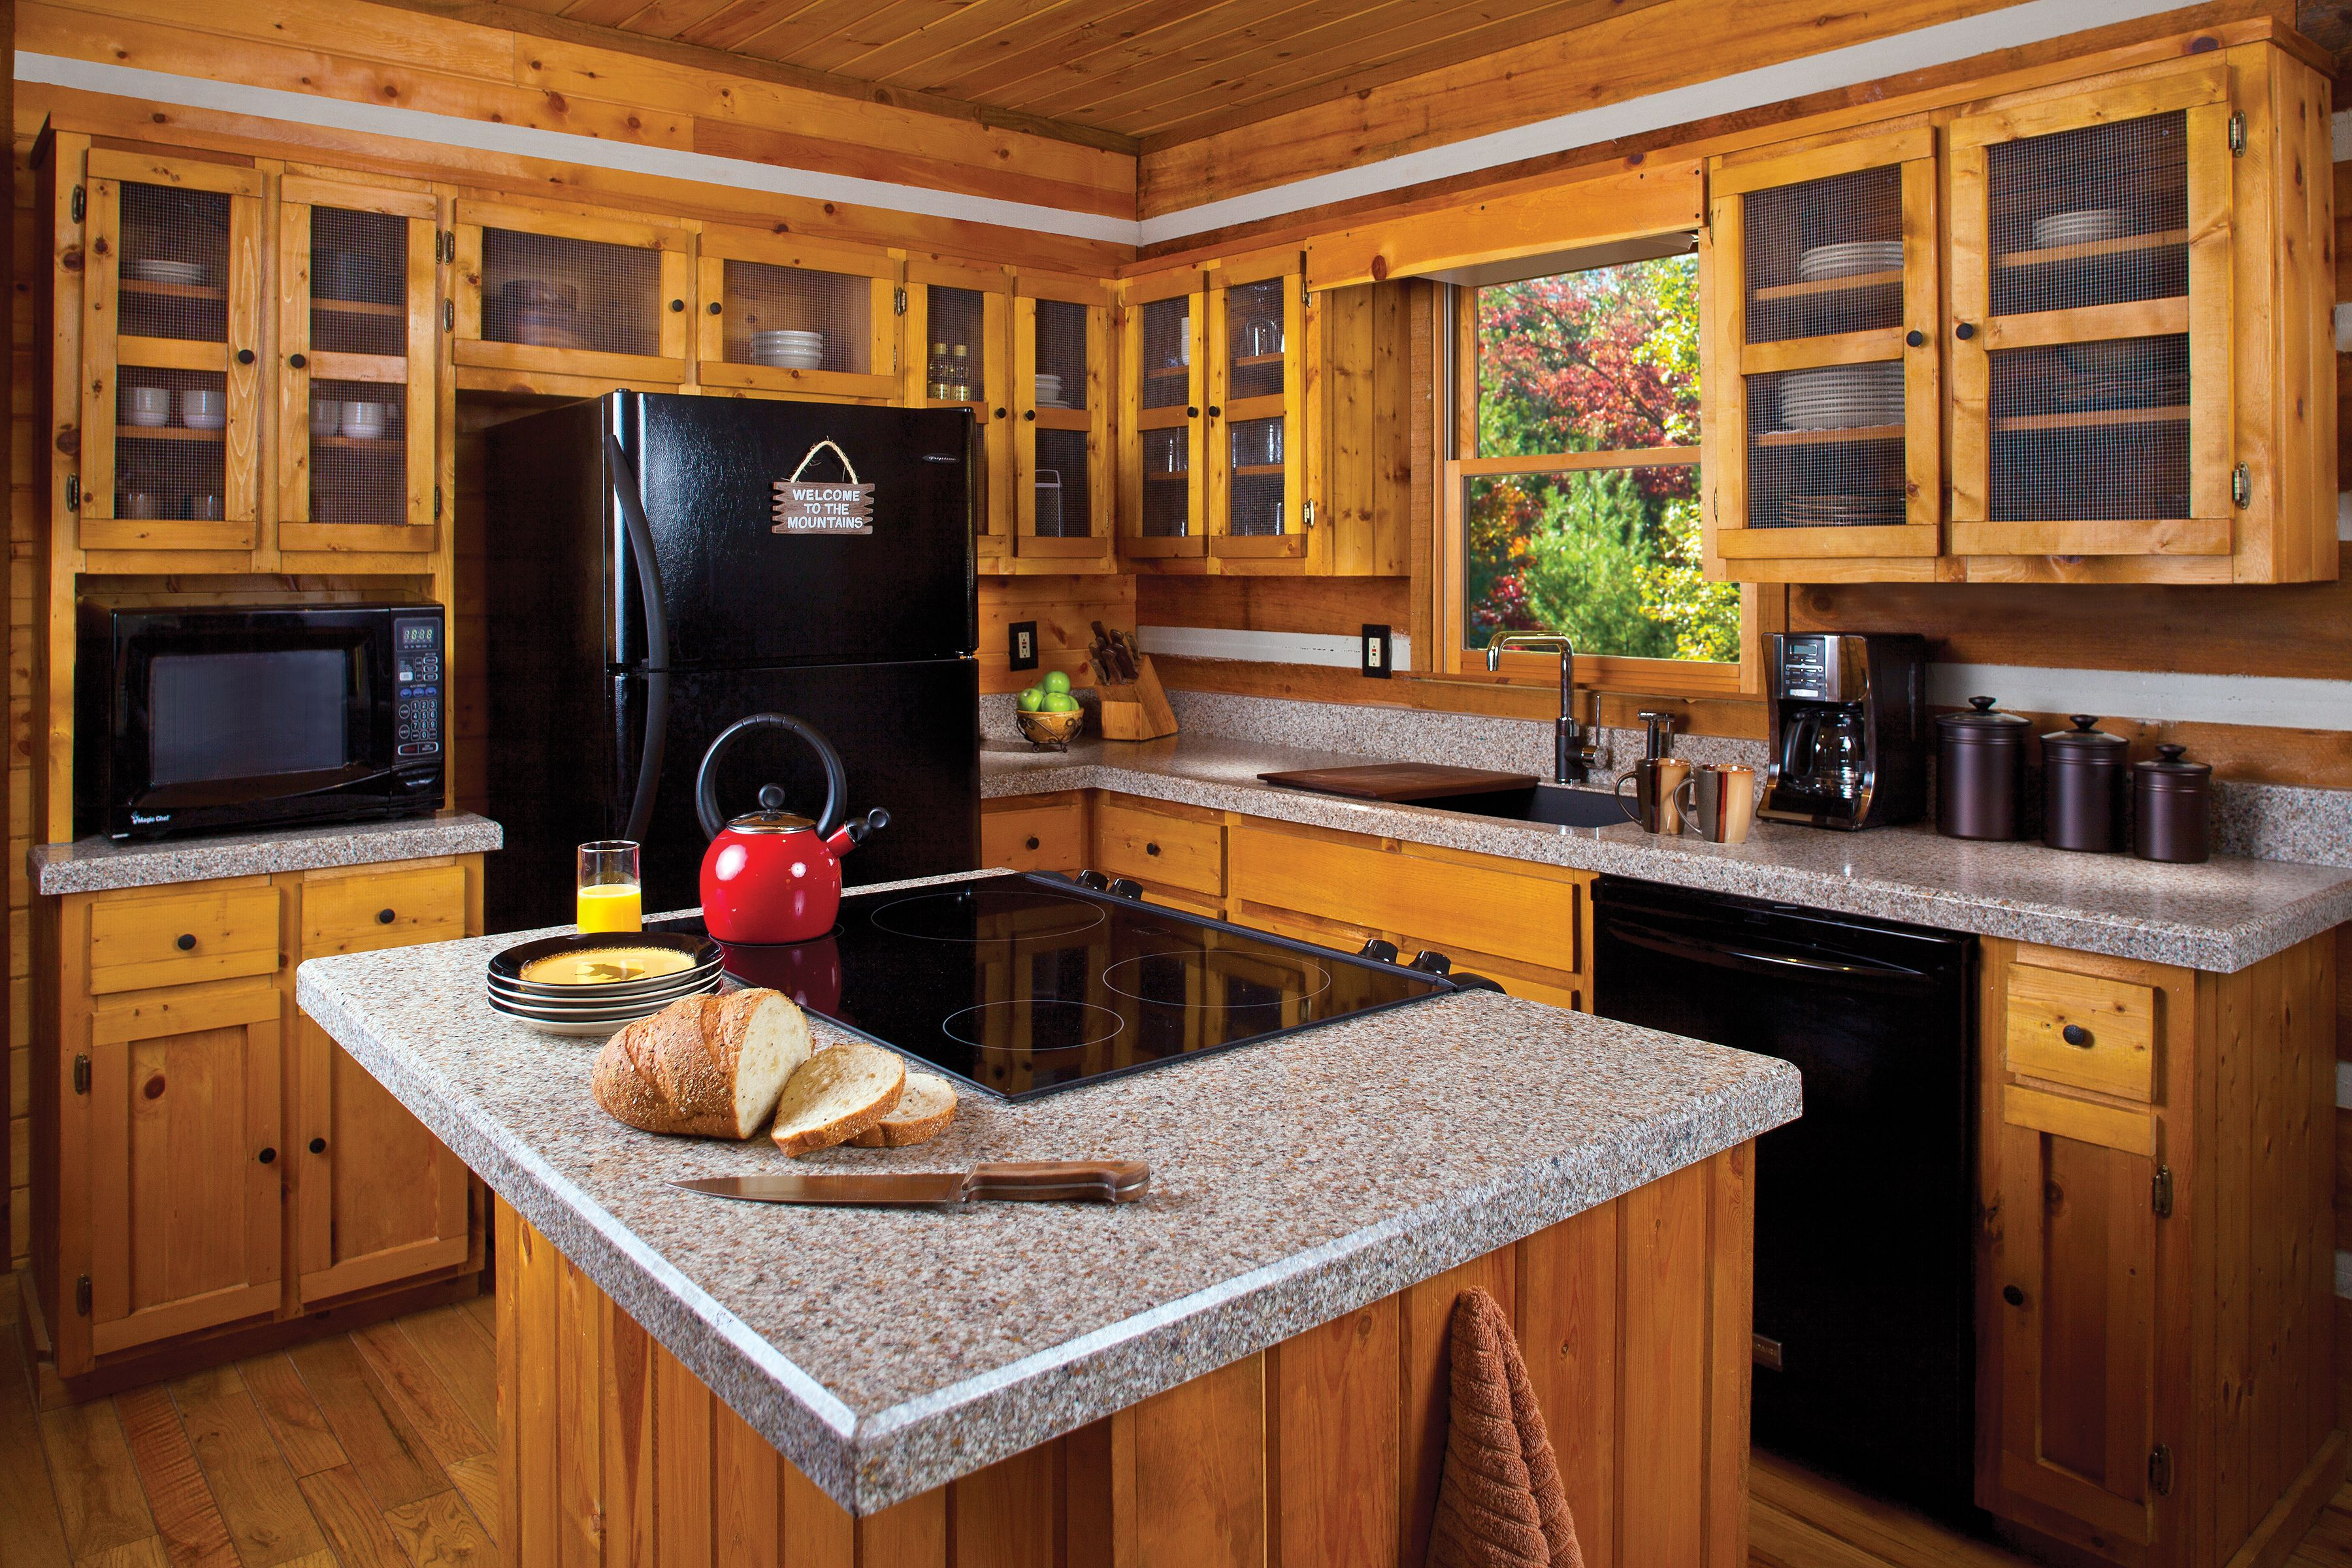 Kitchen Island Options small cabin kitchen wood cook | kitchen images and picture ofcabin